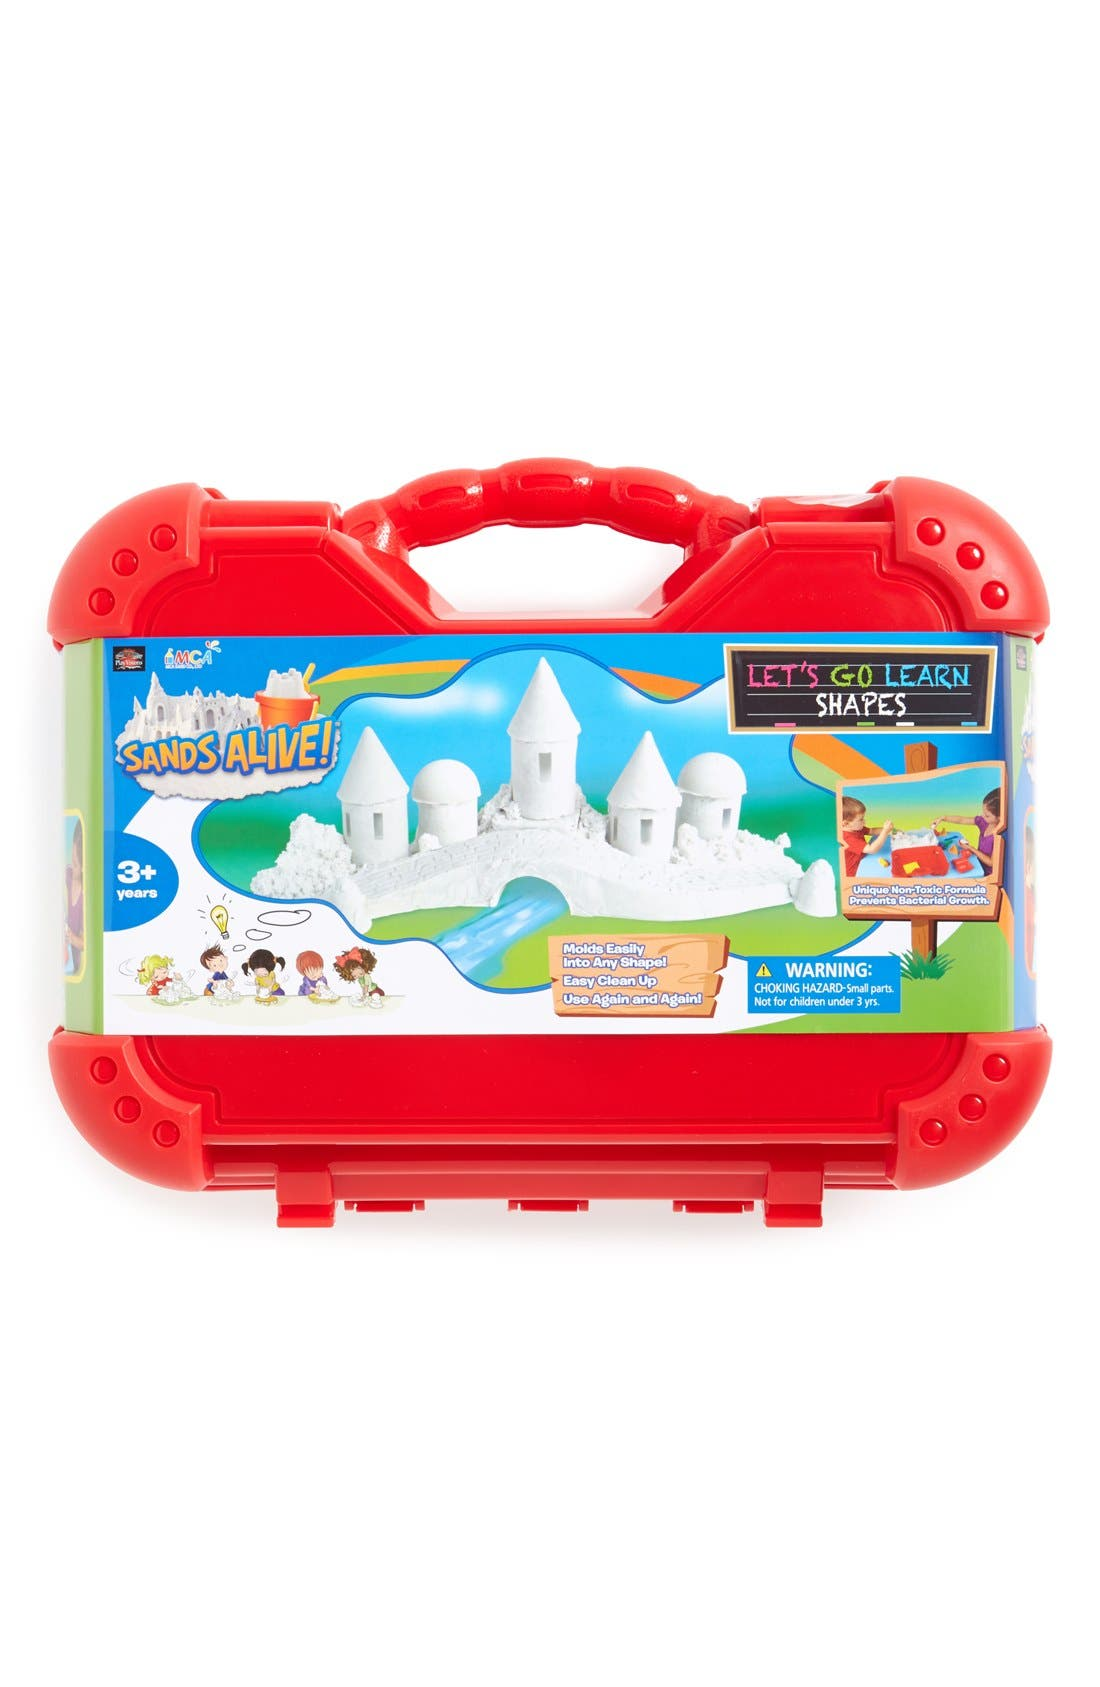 Main Image - Play Visions Toys 'Sands Alive! Let's Go Learn Shapes' Indoor Play Sand Kit